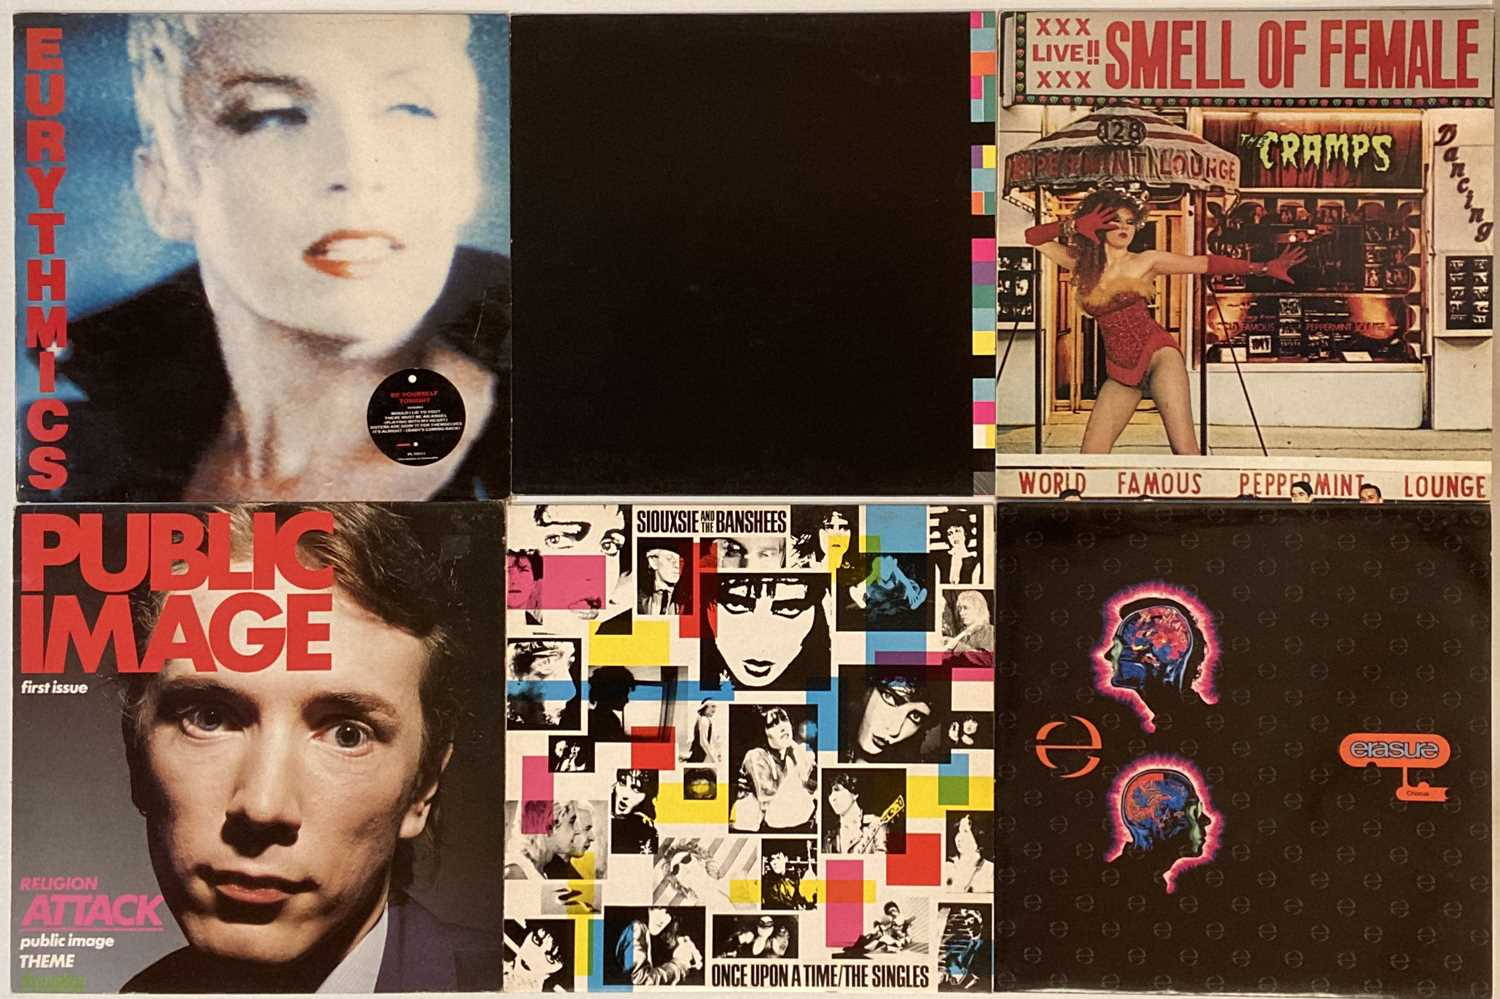 PUNK/INDIE/NEW-WAVE/COOL POP – LPs - Image 3 of 5